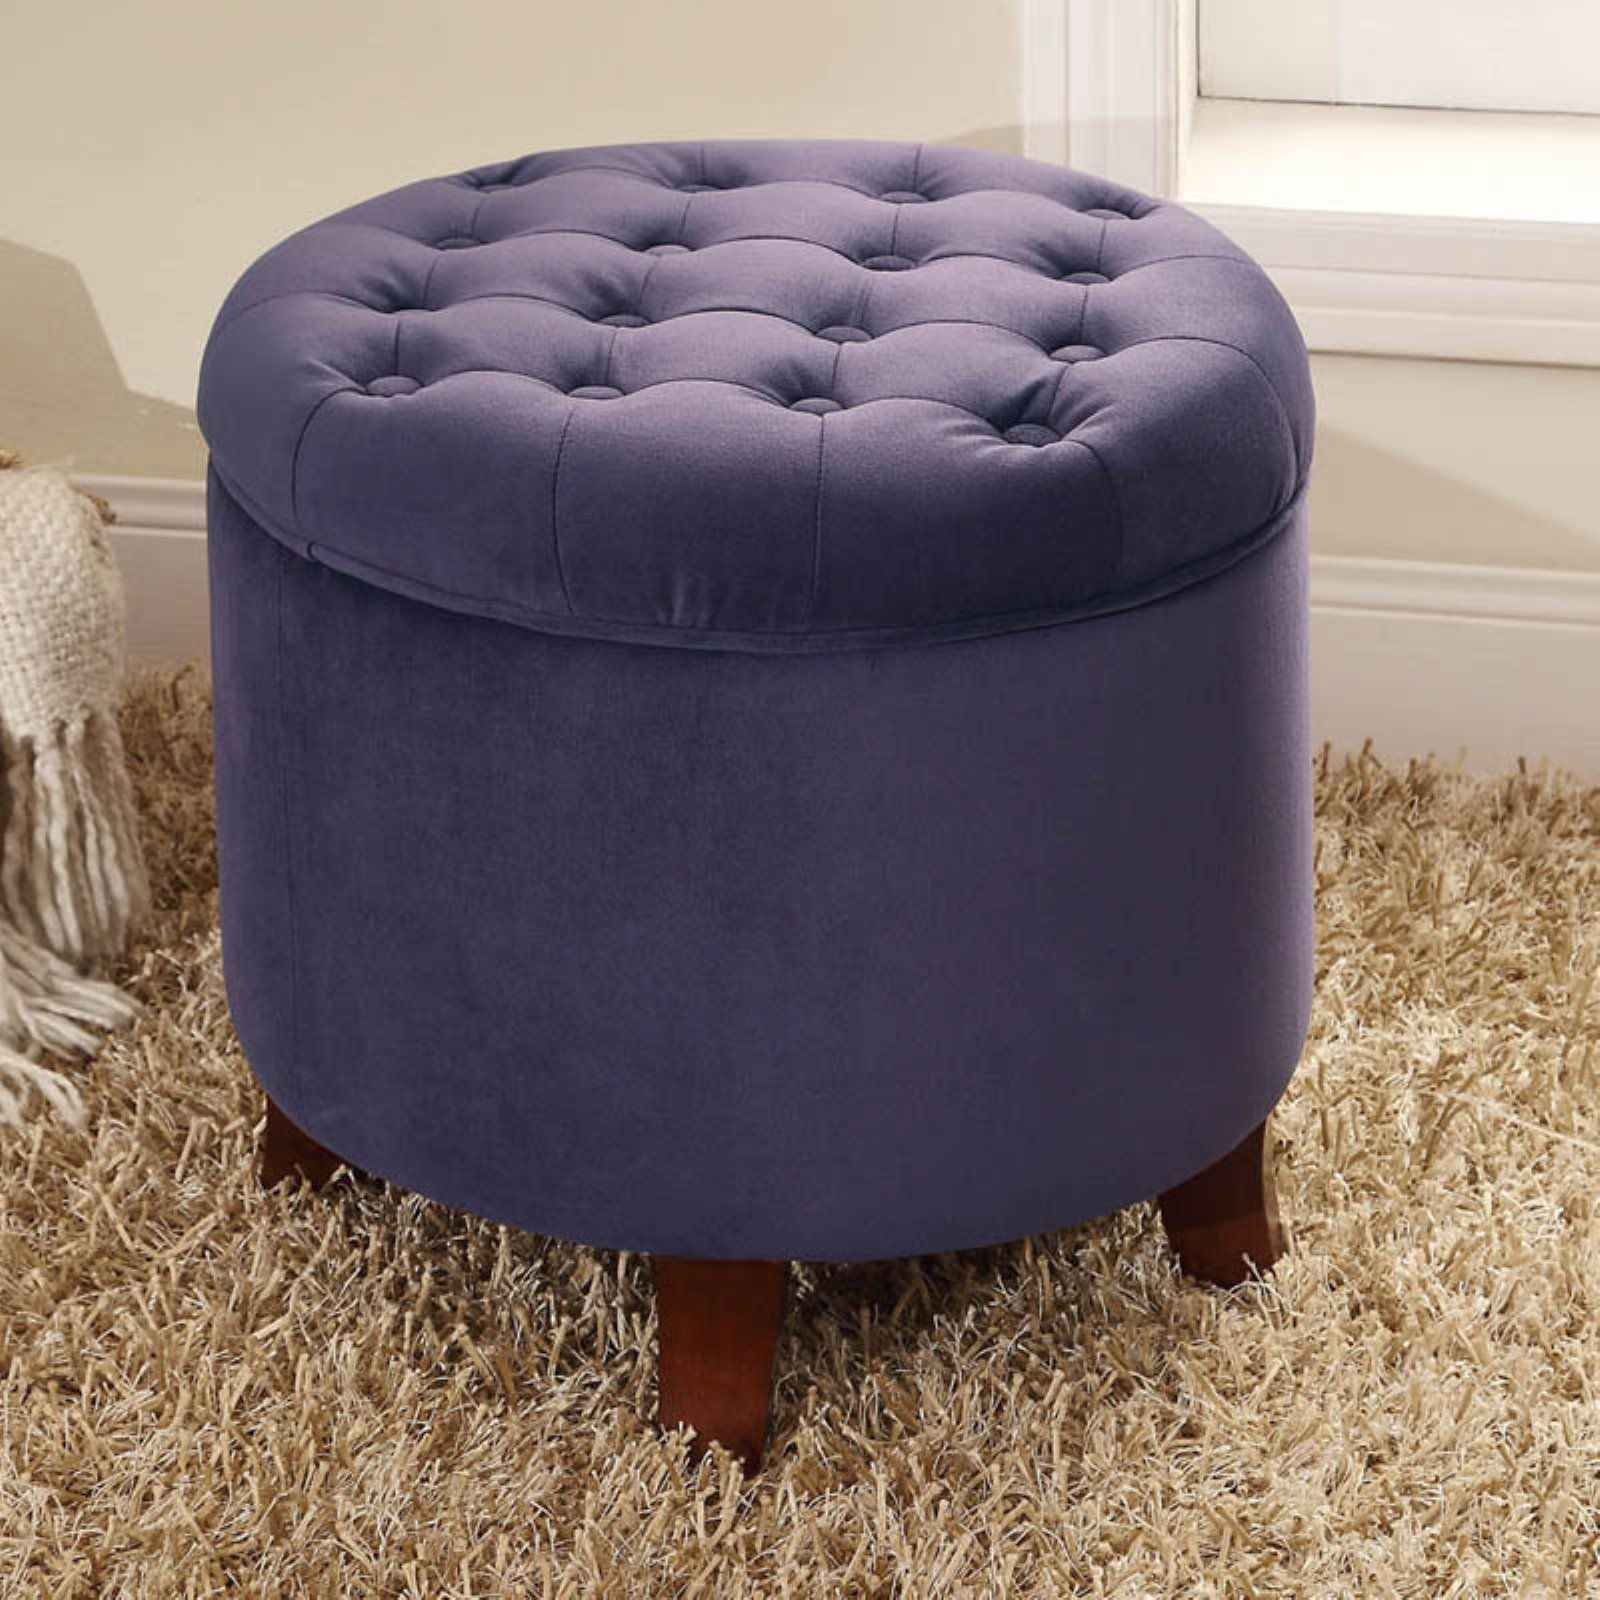 Wondrous Kinfine Round Storage Ottoman Plum Products In 2019 Ncnpc Chair Design For Home Ncnpcorg